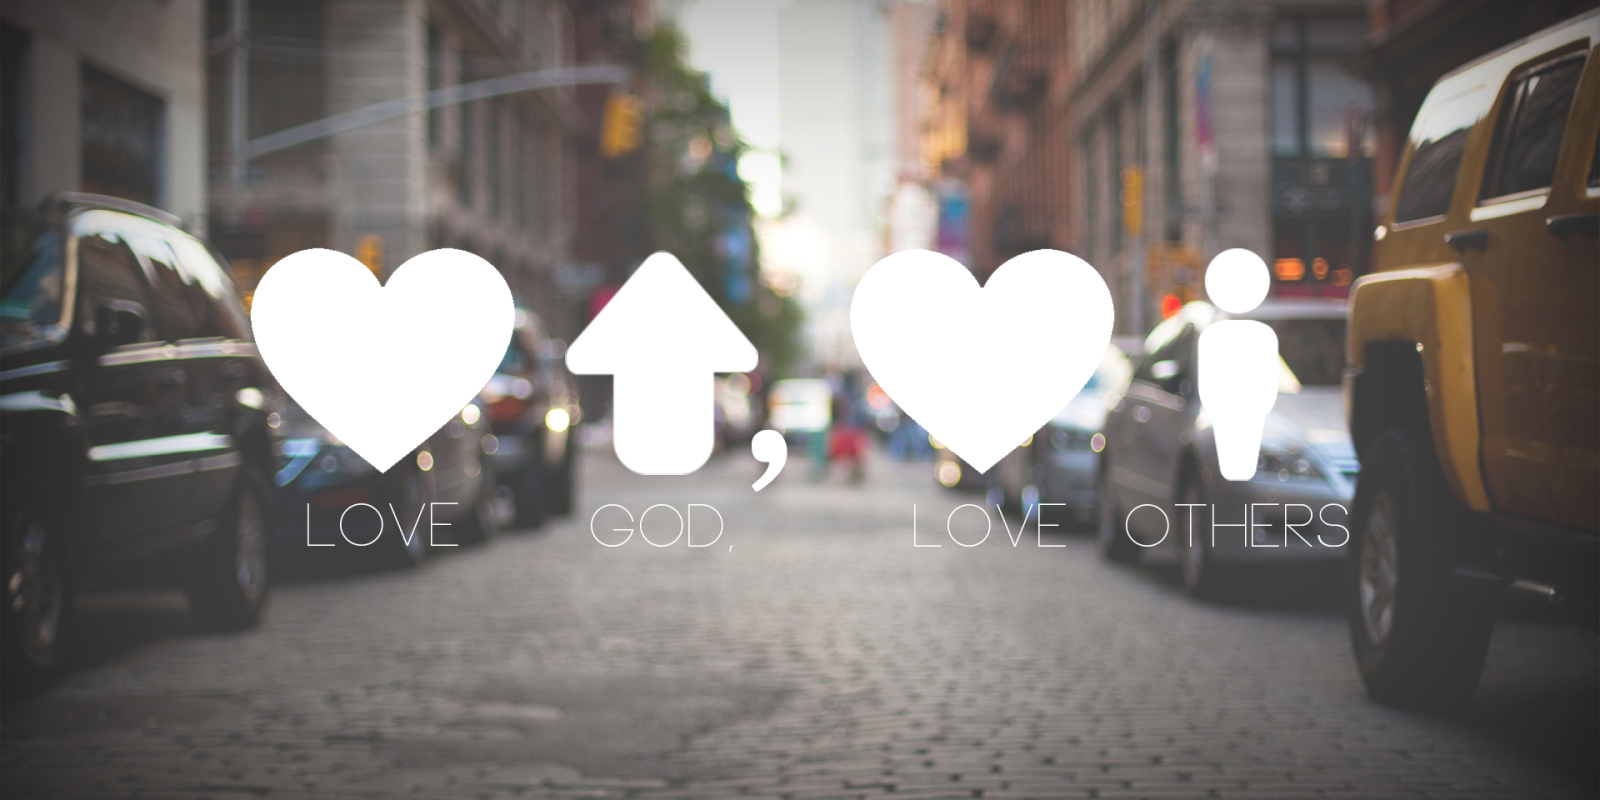 Love God, Love People